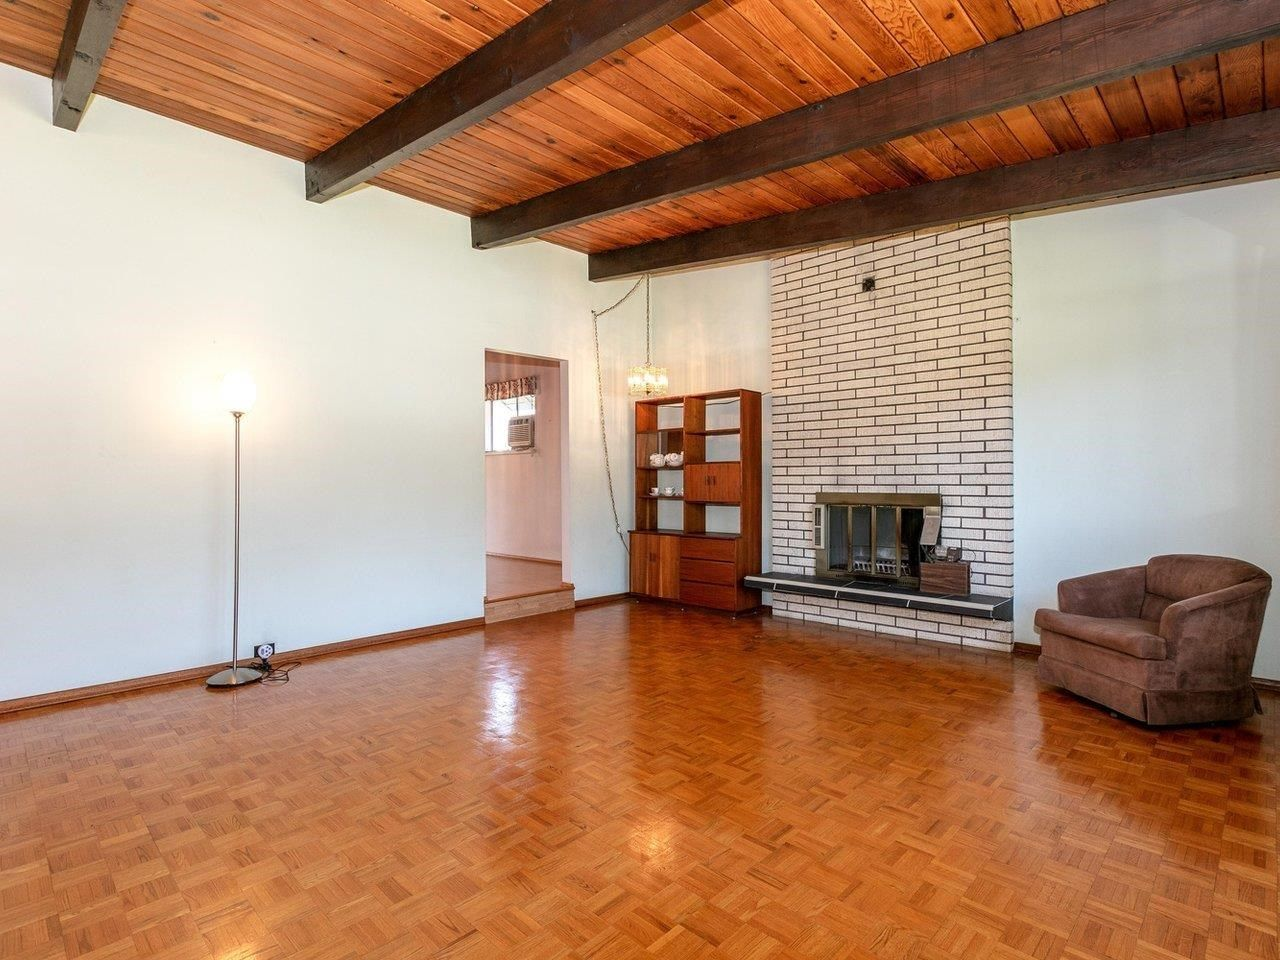 Photo 3: Photos: 6860 HYCREST Drive in Burnaby: Montecito House for sale (Burnaby North)  : MLS®# R2594917